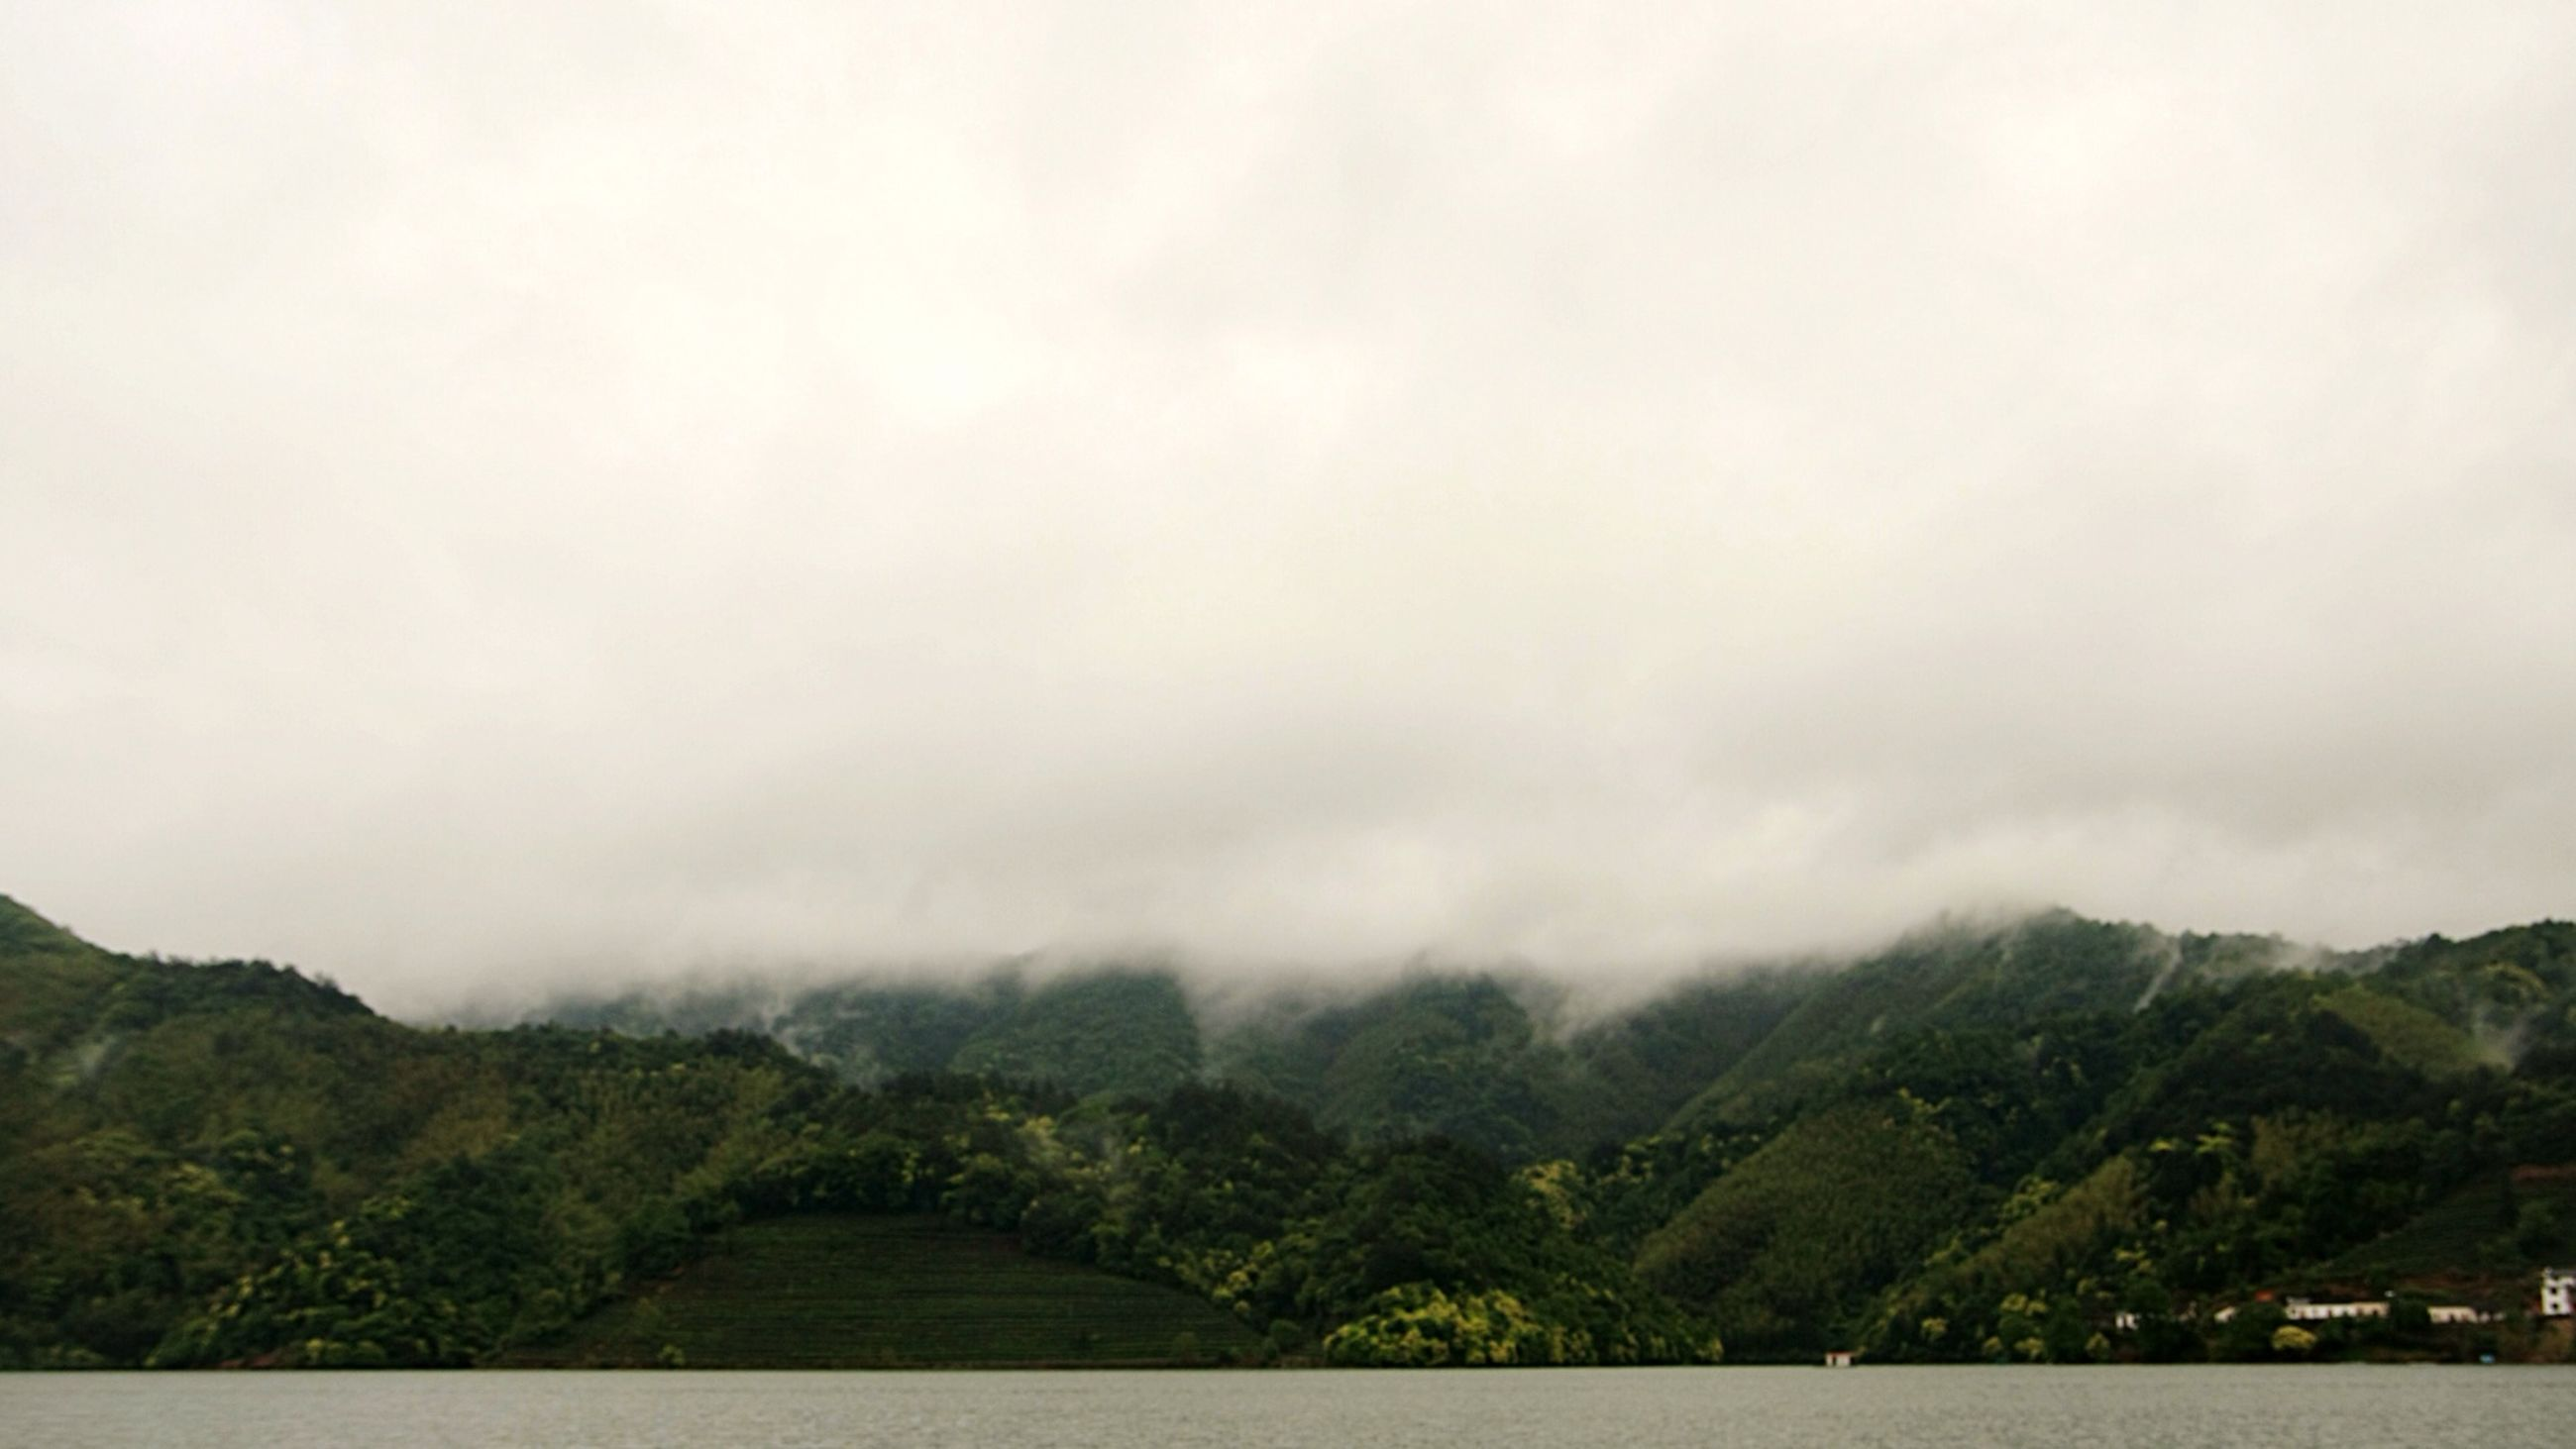 mountain, sky, scenics, tranquil scene, tranquility, beauty in nature, mountain range, tree, nature, cloudy, landscape, cloud - sky, weather, fog, overcast, non-urban scene, idyllic, day, outdoors, cloud